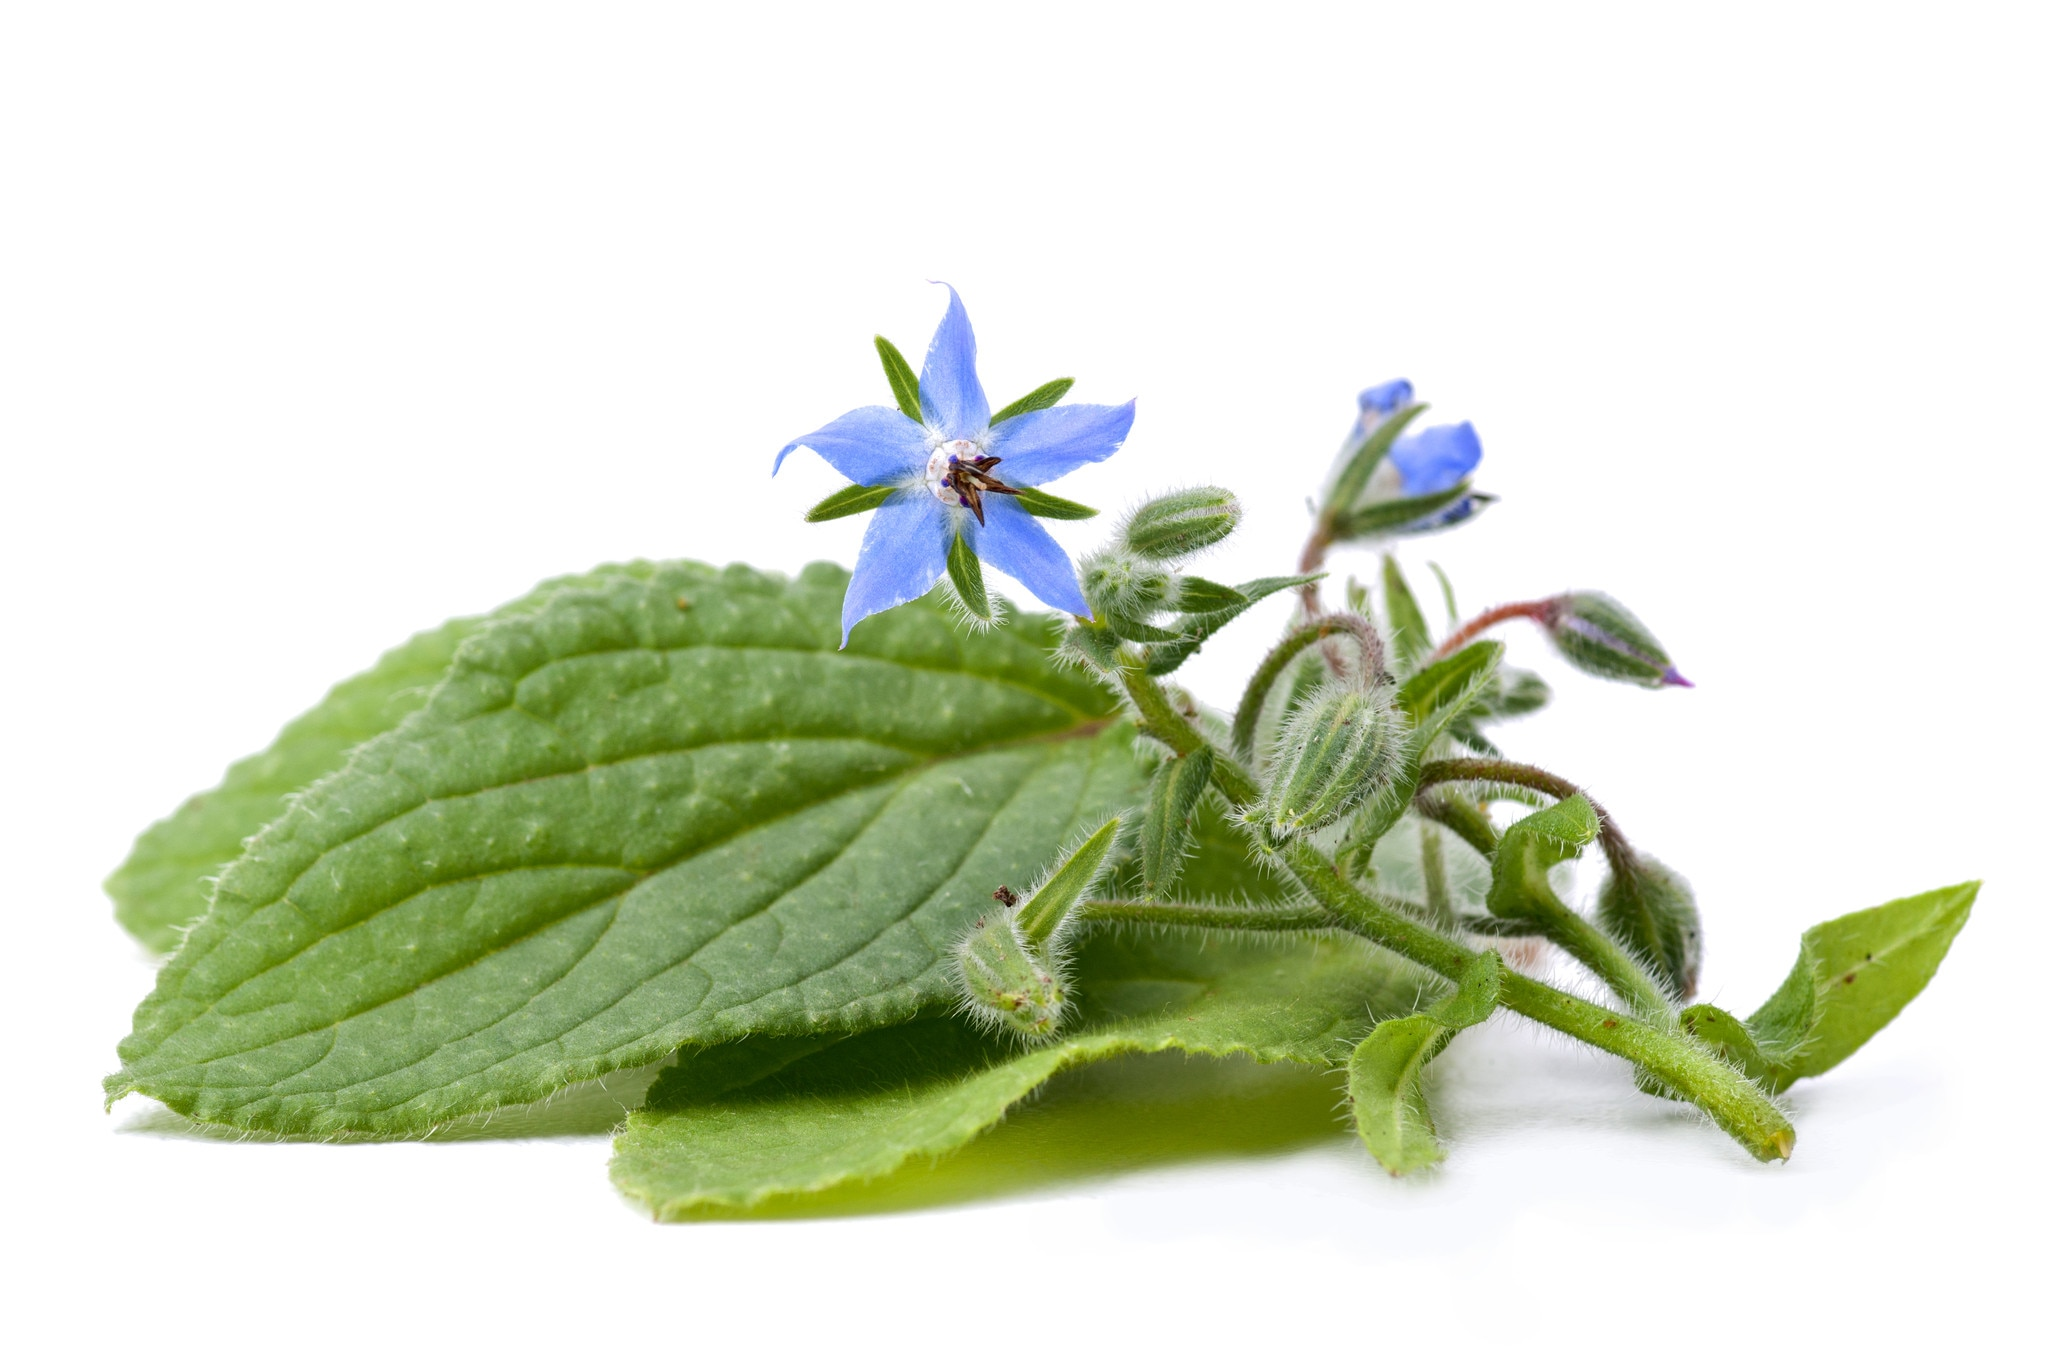 Owing to our rich experience in this domain we are able to offer premium quality Borage Oil that is ideal for both dietary and cosmetic applications. The given borage oils are obtainable in numerous packaging options as per the need of the customers. These borage oils are finely processed using premium quality natural ingredients keeping in mind the set standard of market. Our borage oils are provided in bulk quantity within the stipulated time frame.  Features:  Accurate composition Ideal for both dietary and cosmetic applications Refreshing aroma  Description:  Borage is amongst the richest source of essential fatty acid known to man. The oil rich seed is pressed and extracted using traditional techniques, the crude oil obtained is then refined to yield a pale yellow, low odor product. It is ideal for both dietary and cosmetic applications. Borage carrier oil is well known as being the richest commercial plant source of gla, an omega 6 fatty acid which is a key building brick' in production of the body's regulatory hormones.  Common names:  Borage, star flower  Blends with:  Borage carrier oil blends well with all the essential oils.  Constituents:  Docosenoic- 2.5% icosenoic- 4.2% gamma linolenic- 20.5% linoleic- 40.6% oleic- 16.8% palmitic- 10.9%  Uses:  Small amounts (10% or less) of borage is often added to other carrier oils for fortification. It is applicable for all skin types and is commonly used in manufacturing, aromatherapy applications and by massage therapists.  Specifications: Botonical NameBorago Officinalis CAS8024-32-6 Country of OriginChina Color & OdorPale yellow to golden yellow liquid with Characteristic odor SolubilitySoluble in alcohol and oils. Insoluble in water Specific Gravity0.92 Optical RotationN/A Refractive Index1.470- 1.480 Flash Point>100 °C Extraction MethodCold-pressed of the seeds/kernels